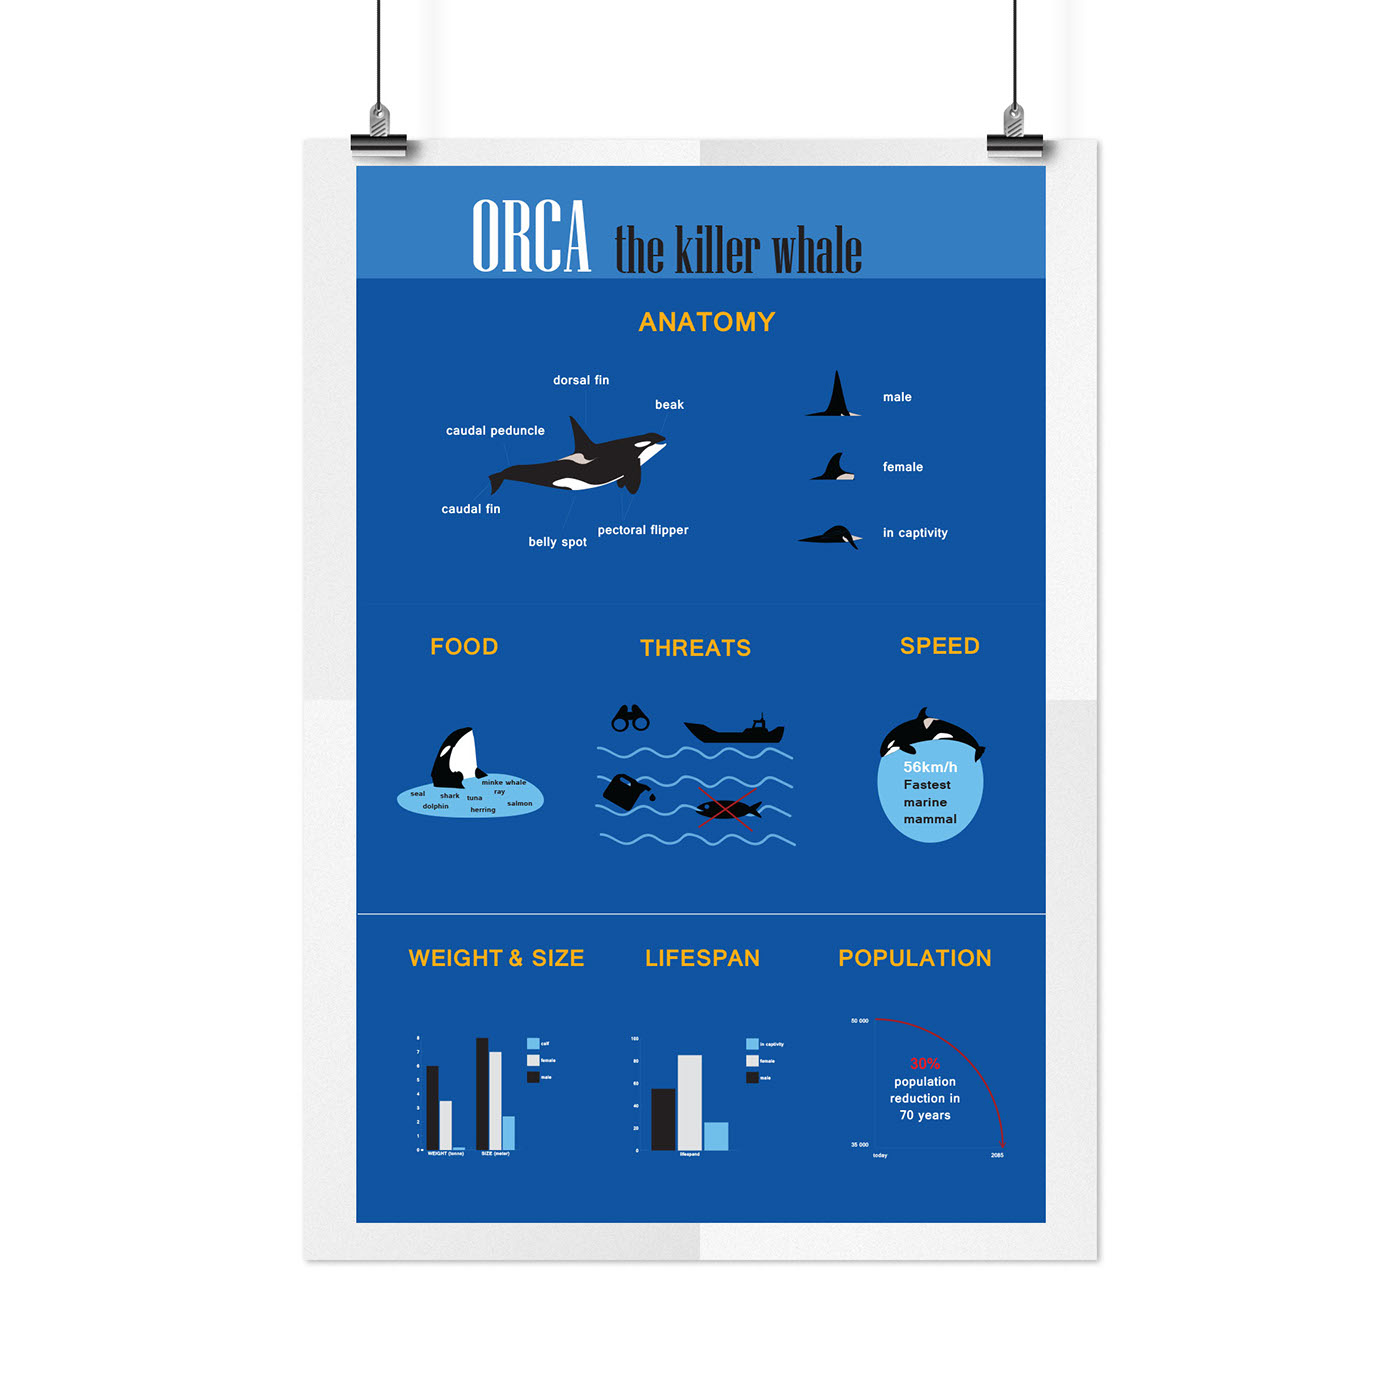 Orca, the killer whale infographic on Behance